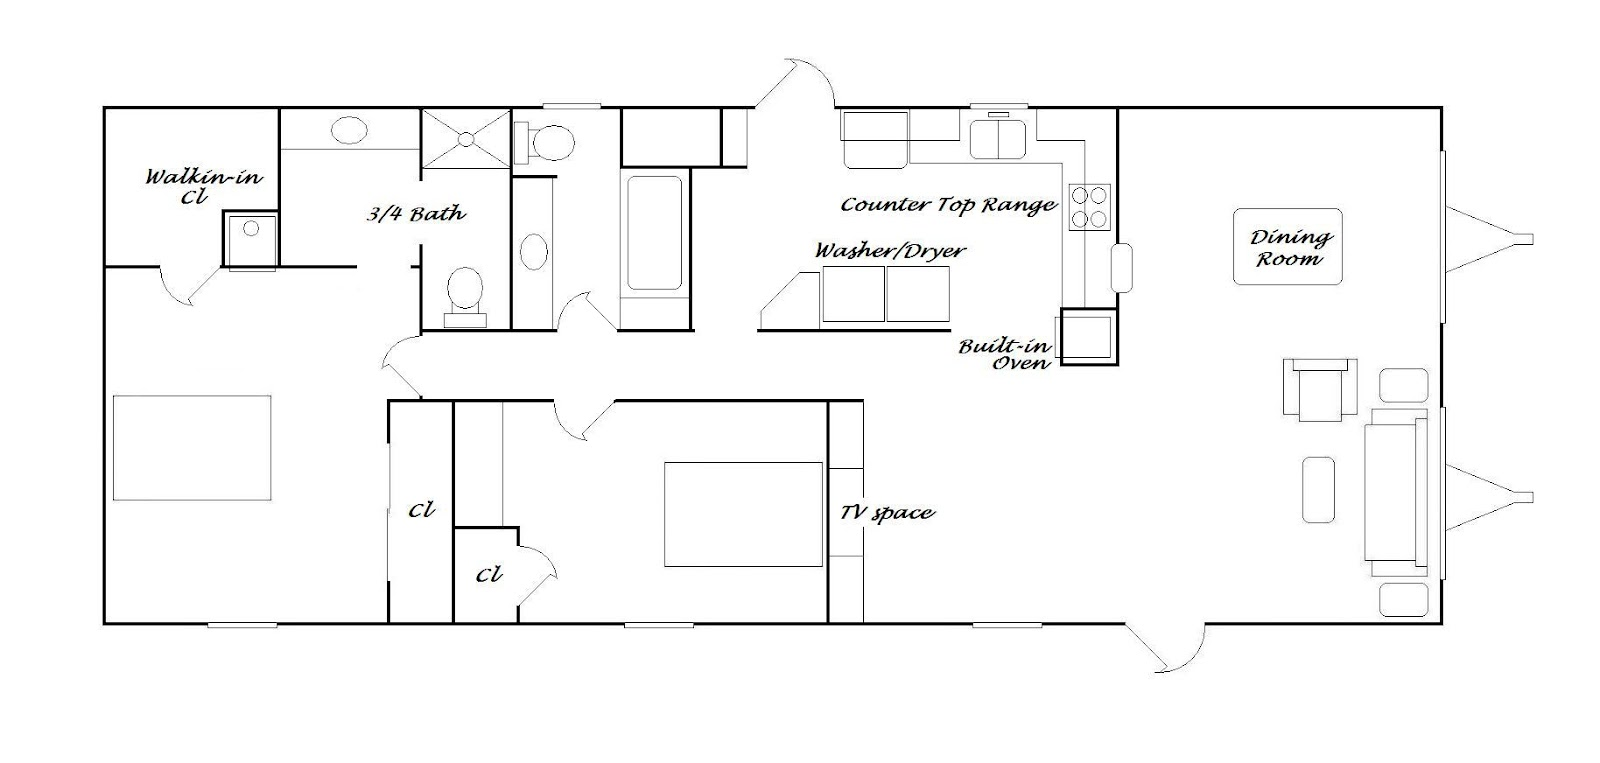 ... Bed additionally Twin Size Loft Bed Plans. on twin home floor plans